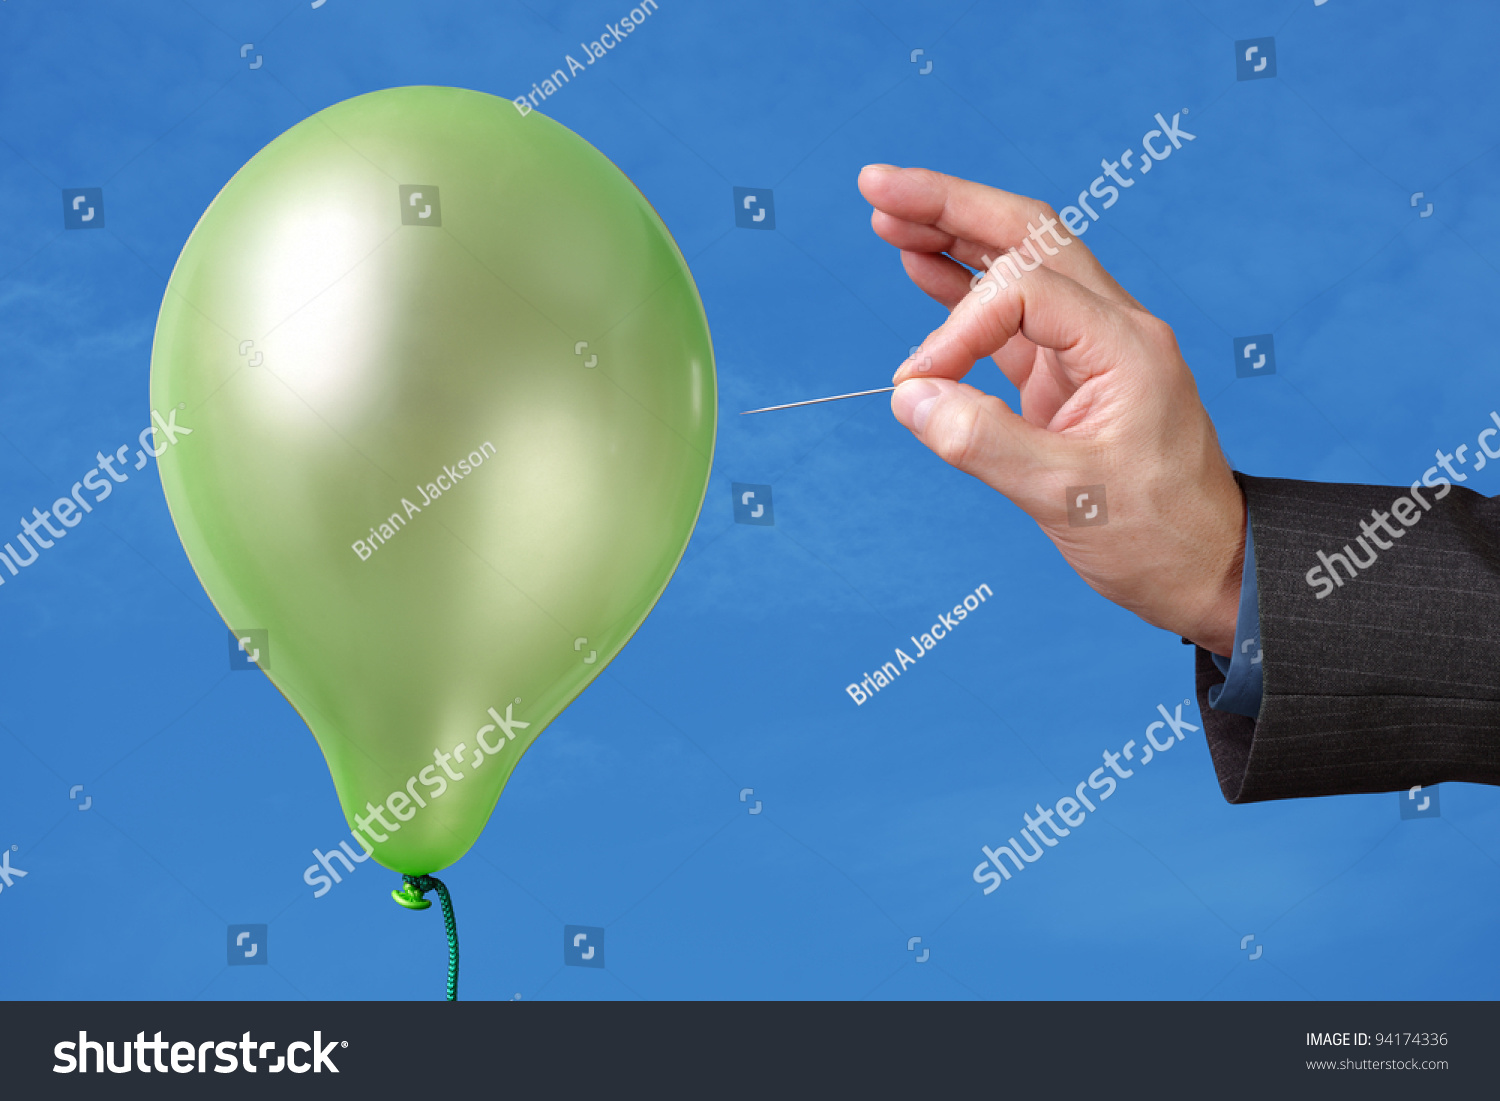 stock-photo-needle-about-to-pop-a-green-